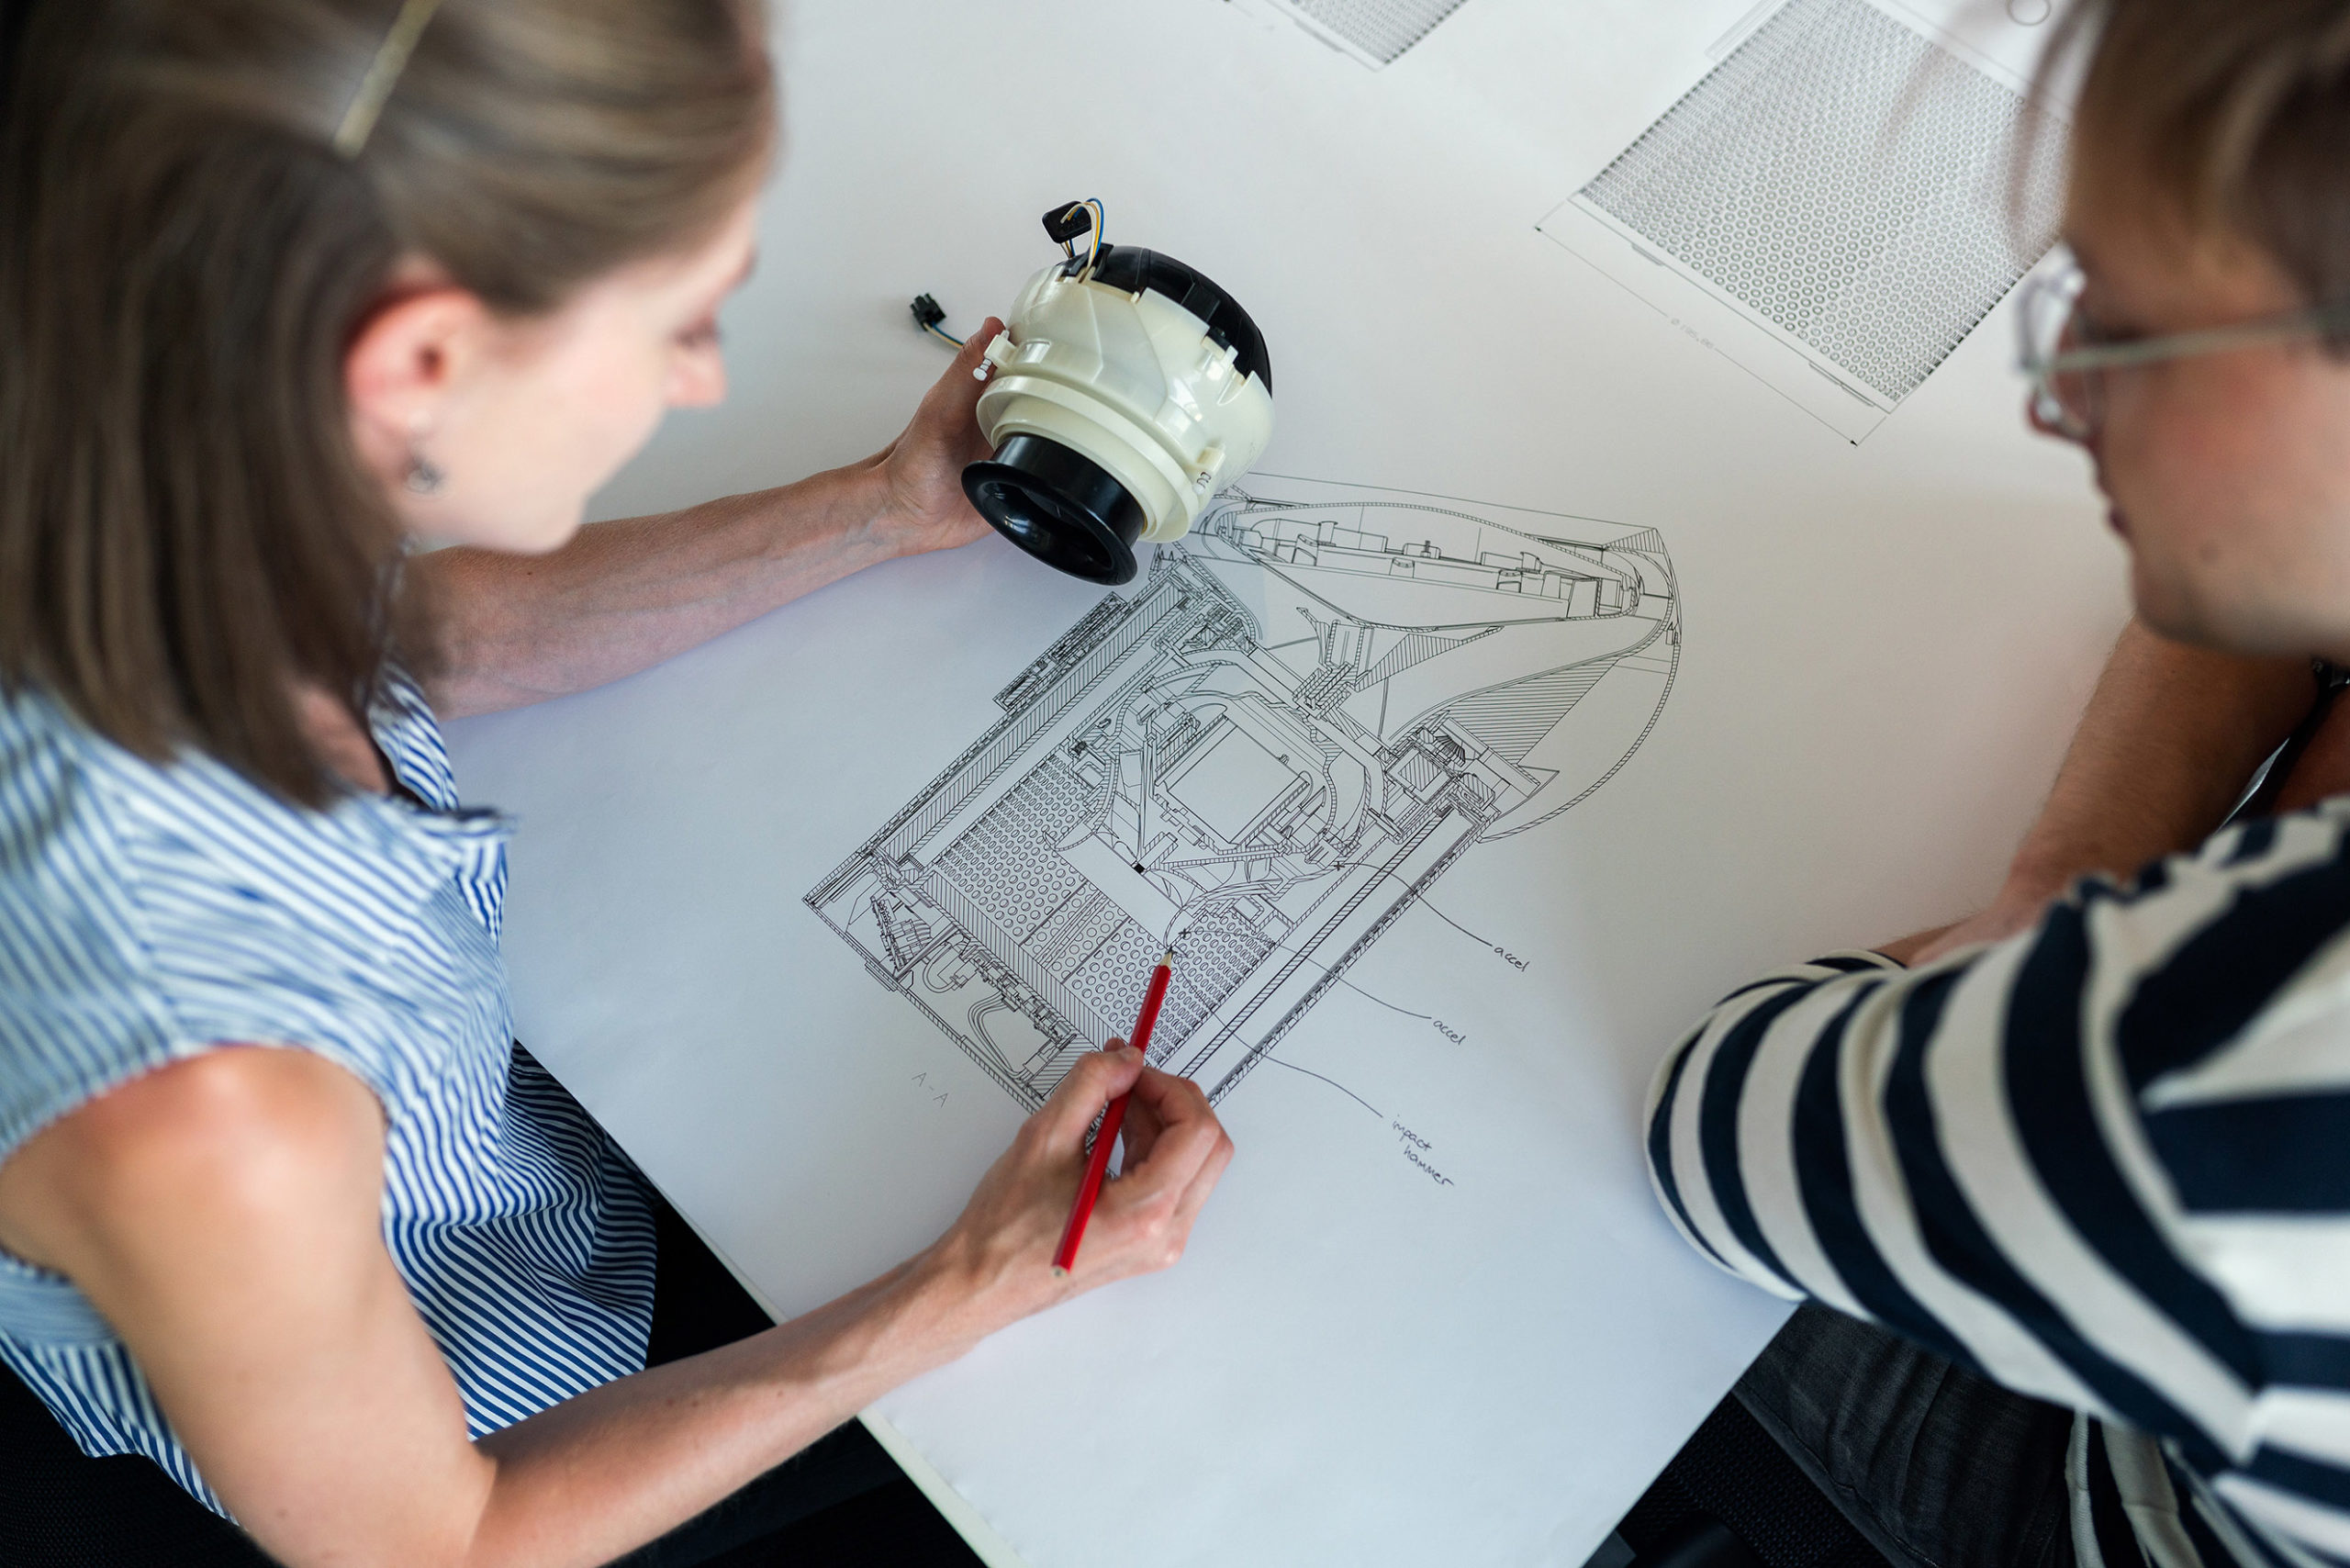 One employee drawing a diagram of a piece of equipment that she is holding in her hand while another is sitting on the side looking at the drawing.